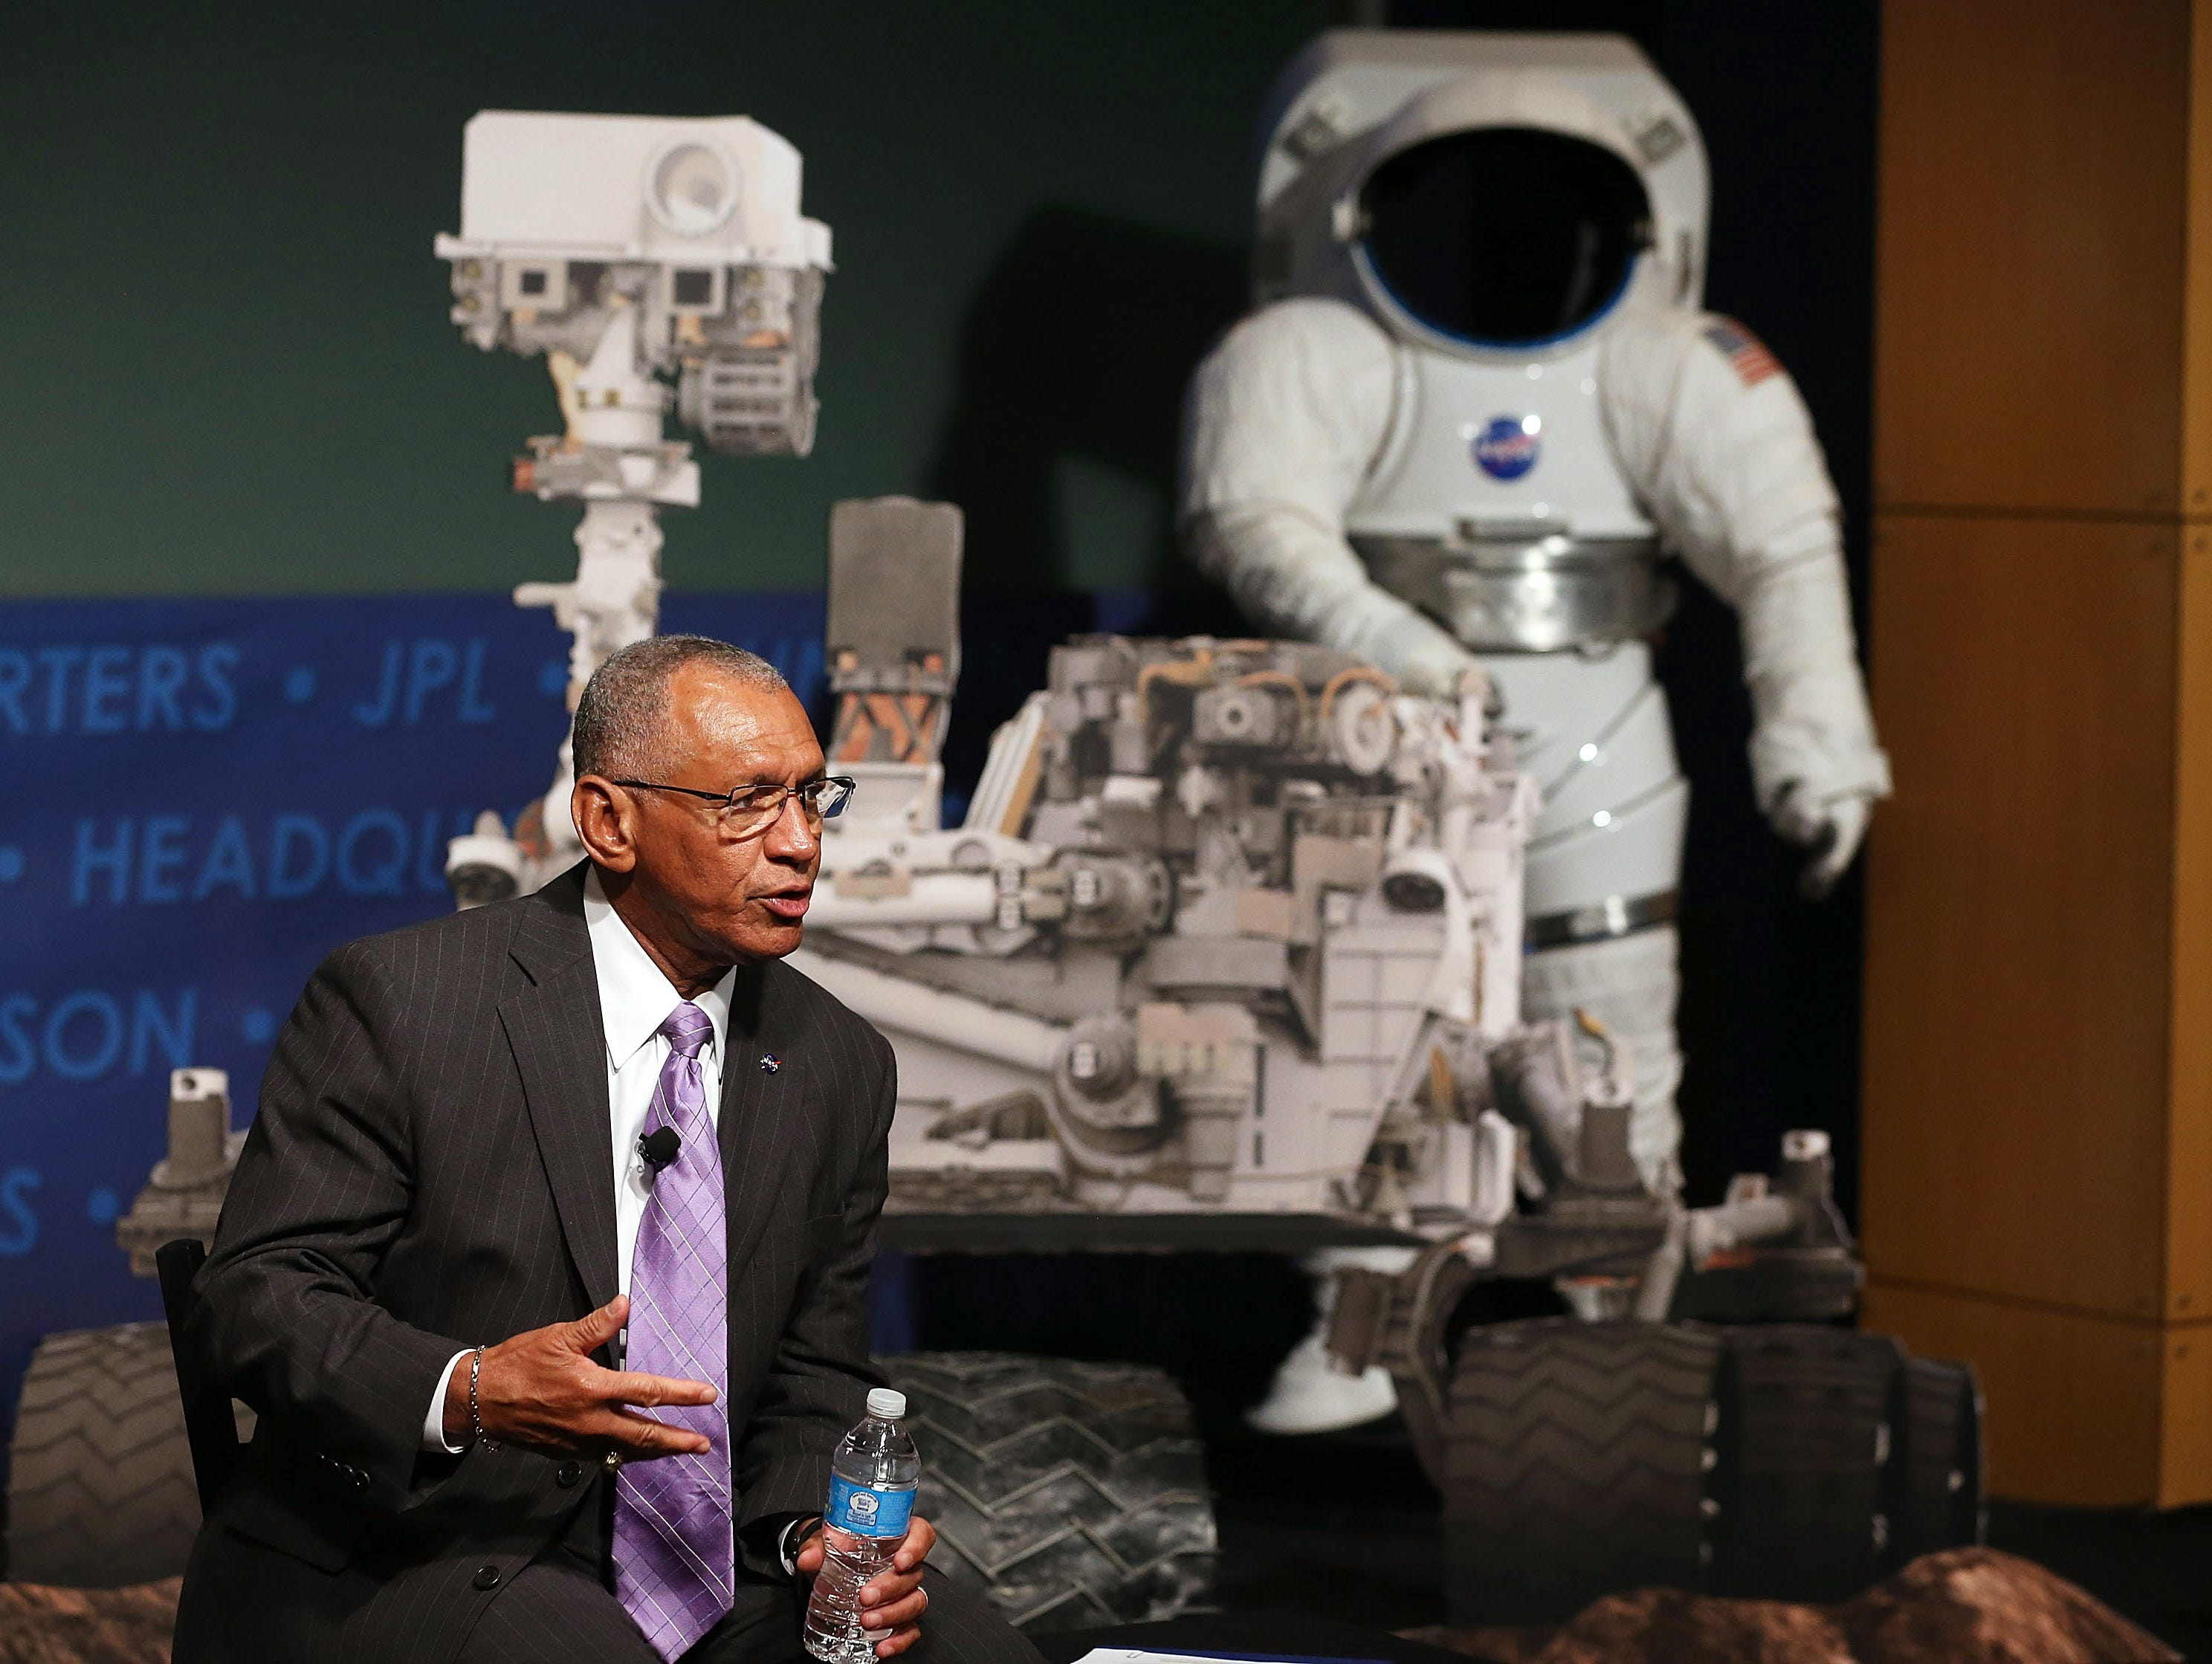 NASA Administrator Charles Bolden speaks about the Curiosity rover during an event at NASA headquarters, Aug. 6  in Washington, D.C. The event was held to observe the first anniversary of NASA's Curiosity rover landing on Mars.